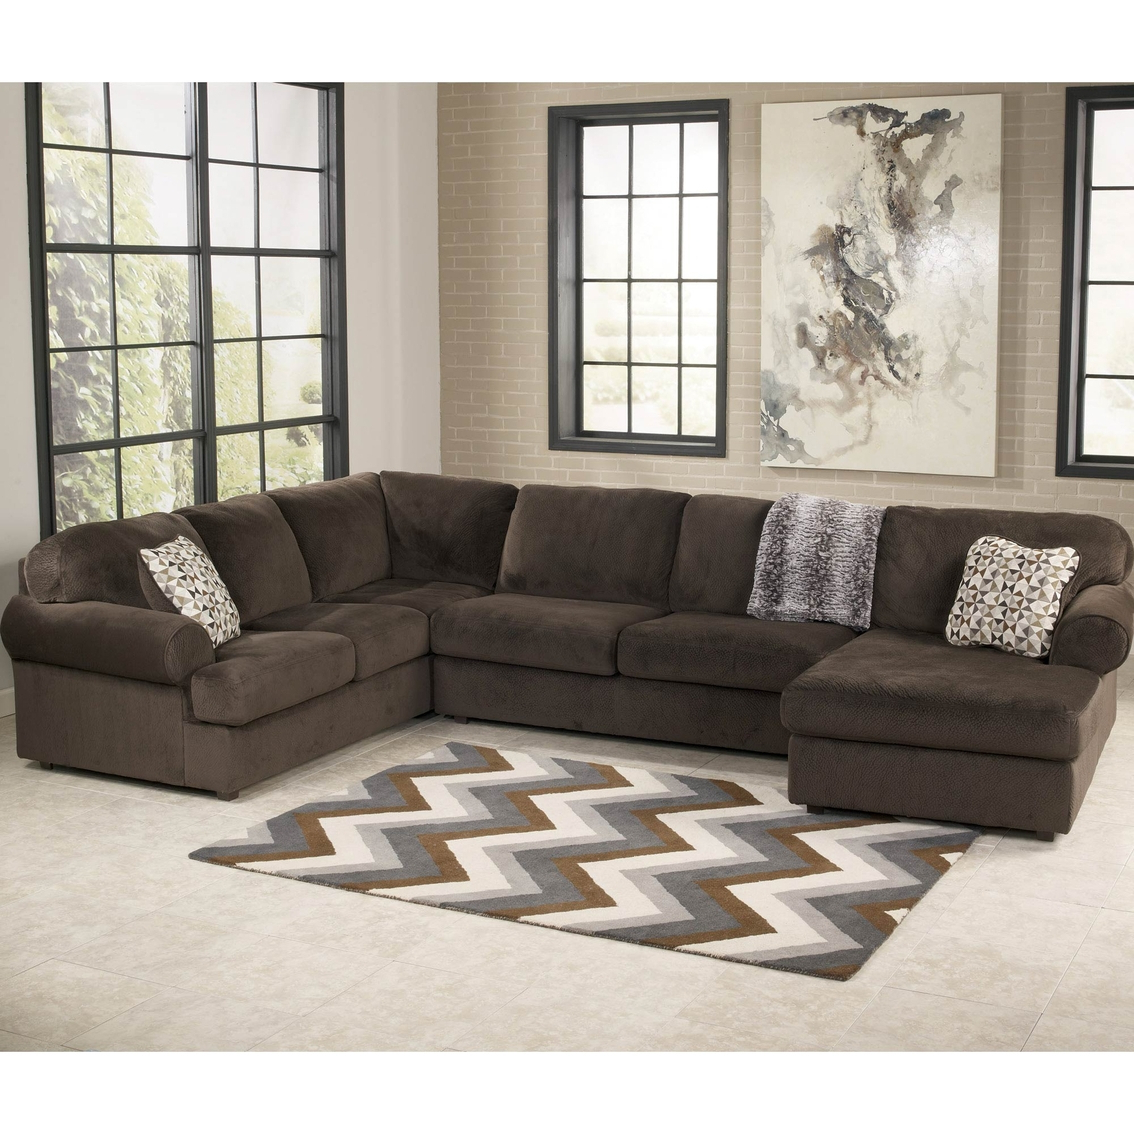 Amazing Signature Designashley Furniture Living Room Sectional Regarding Most Up To Date Benton 4 Piece Sectionals (Gallery 14 of 20)